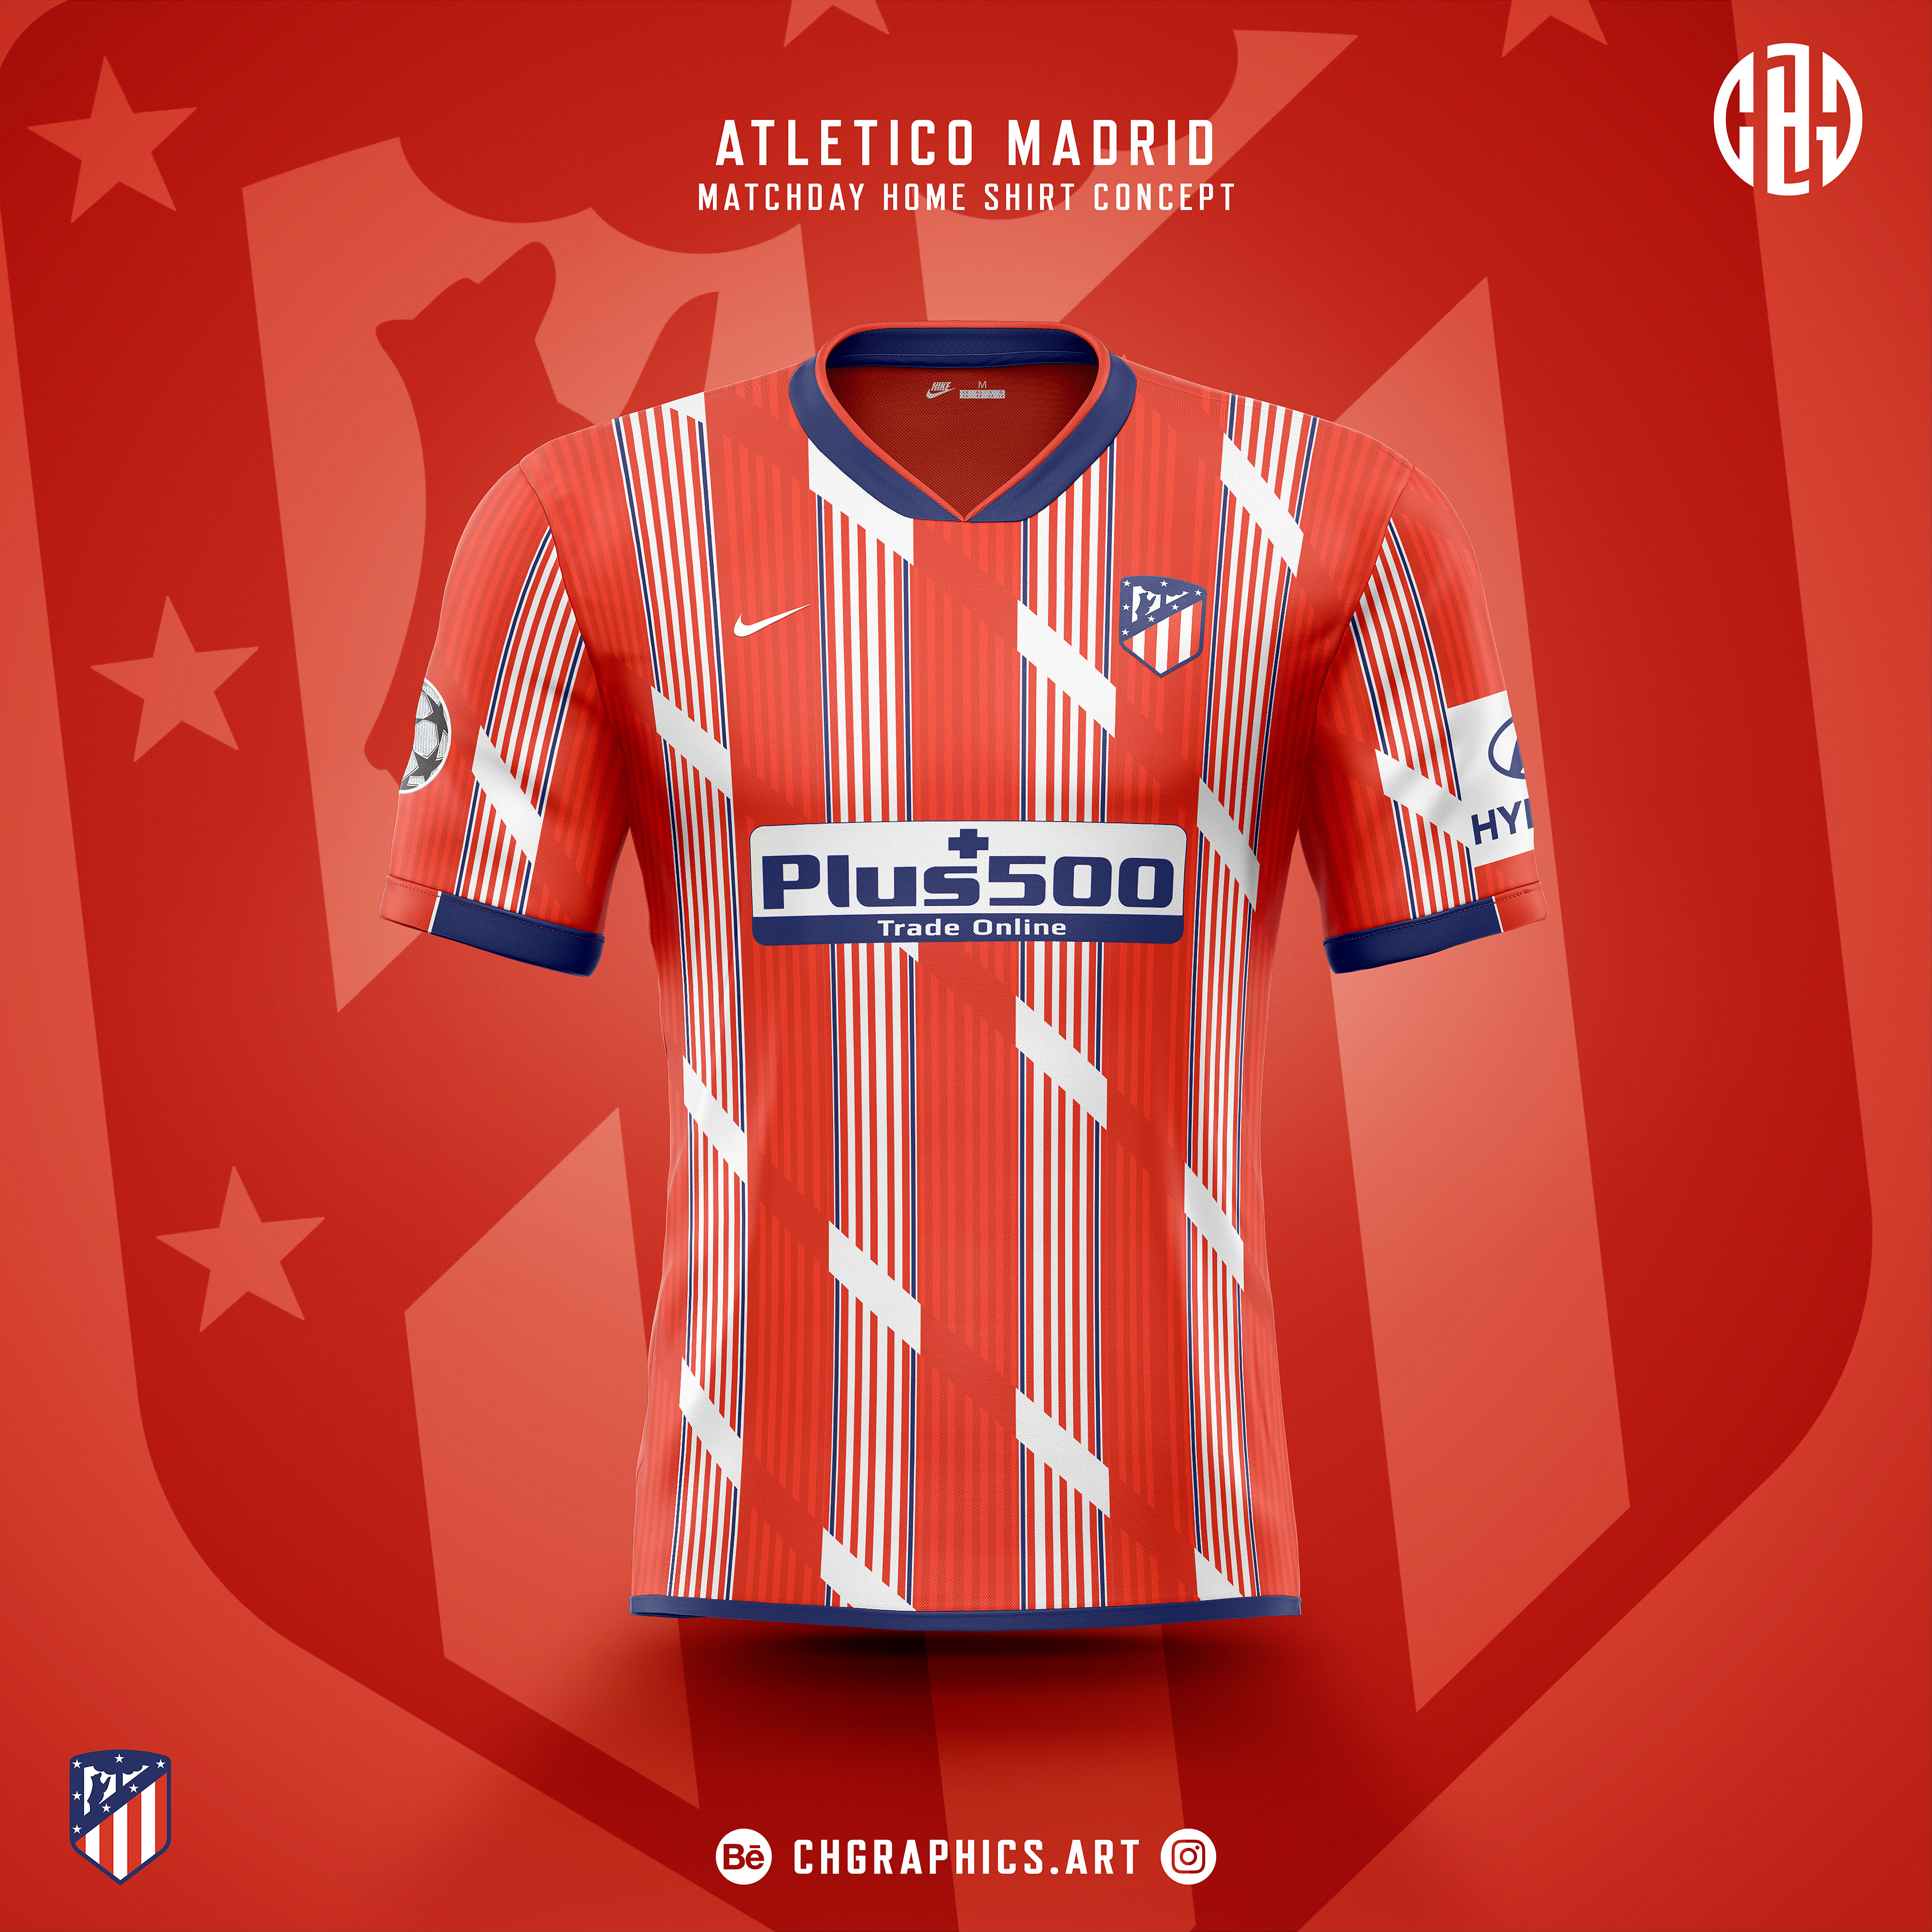 Chgraphics Atletico Madrid Matchday Shirt Concepts